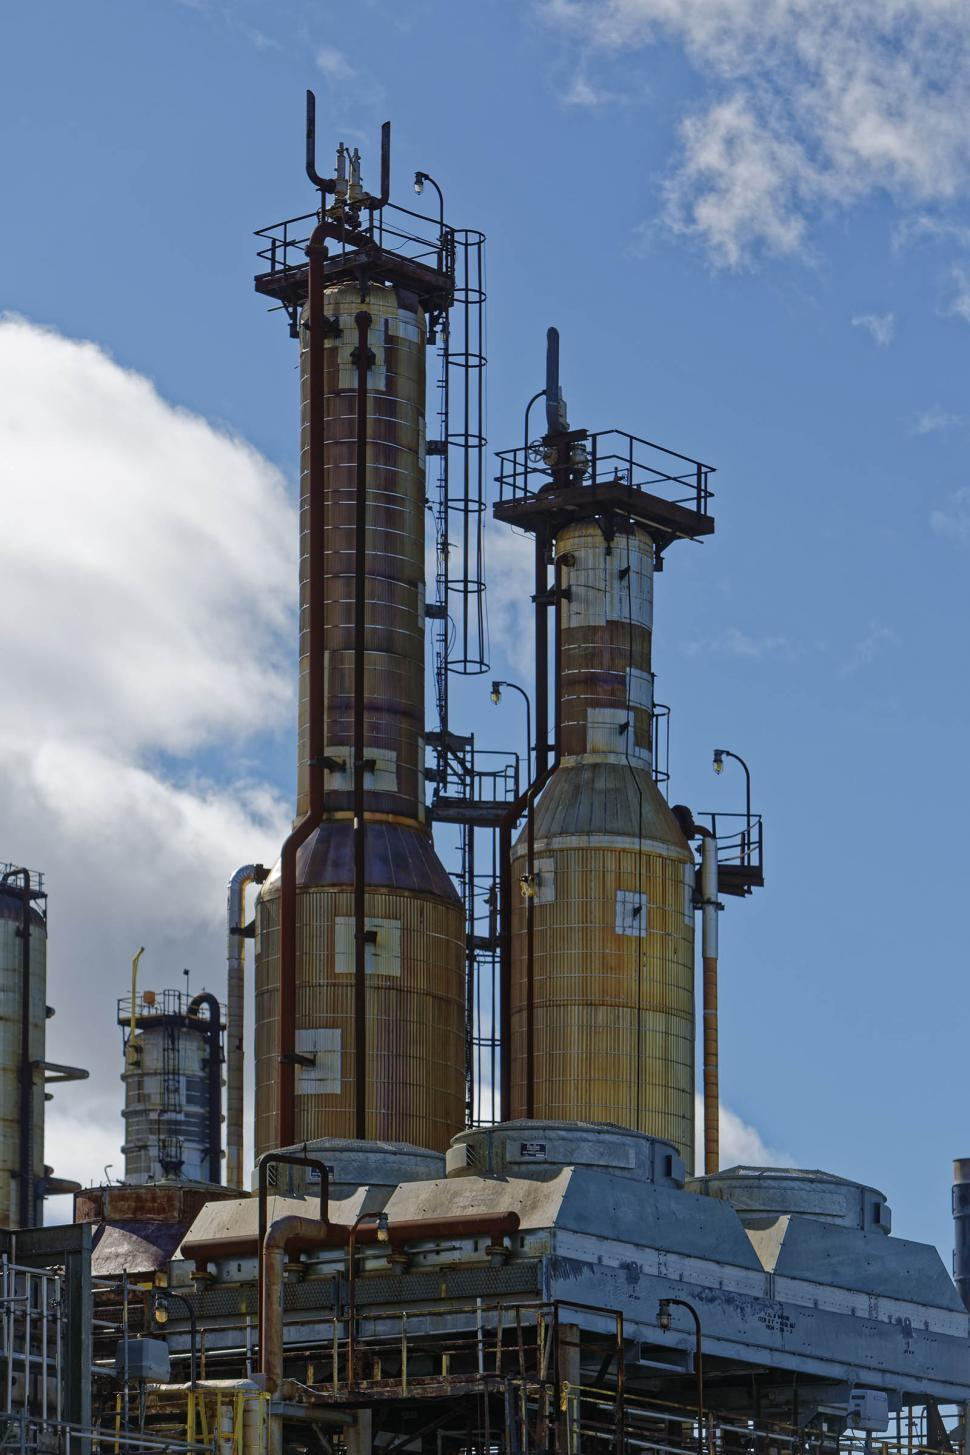 Download Free Stock Photo of Two industrial towers